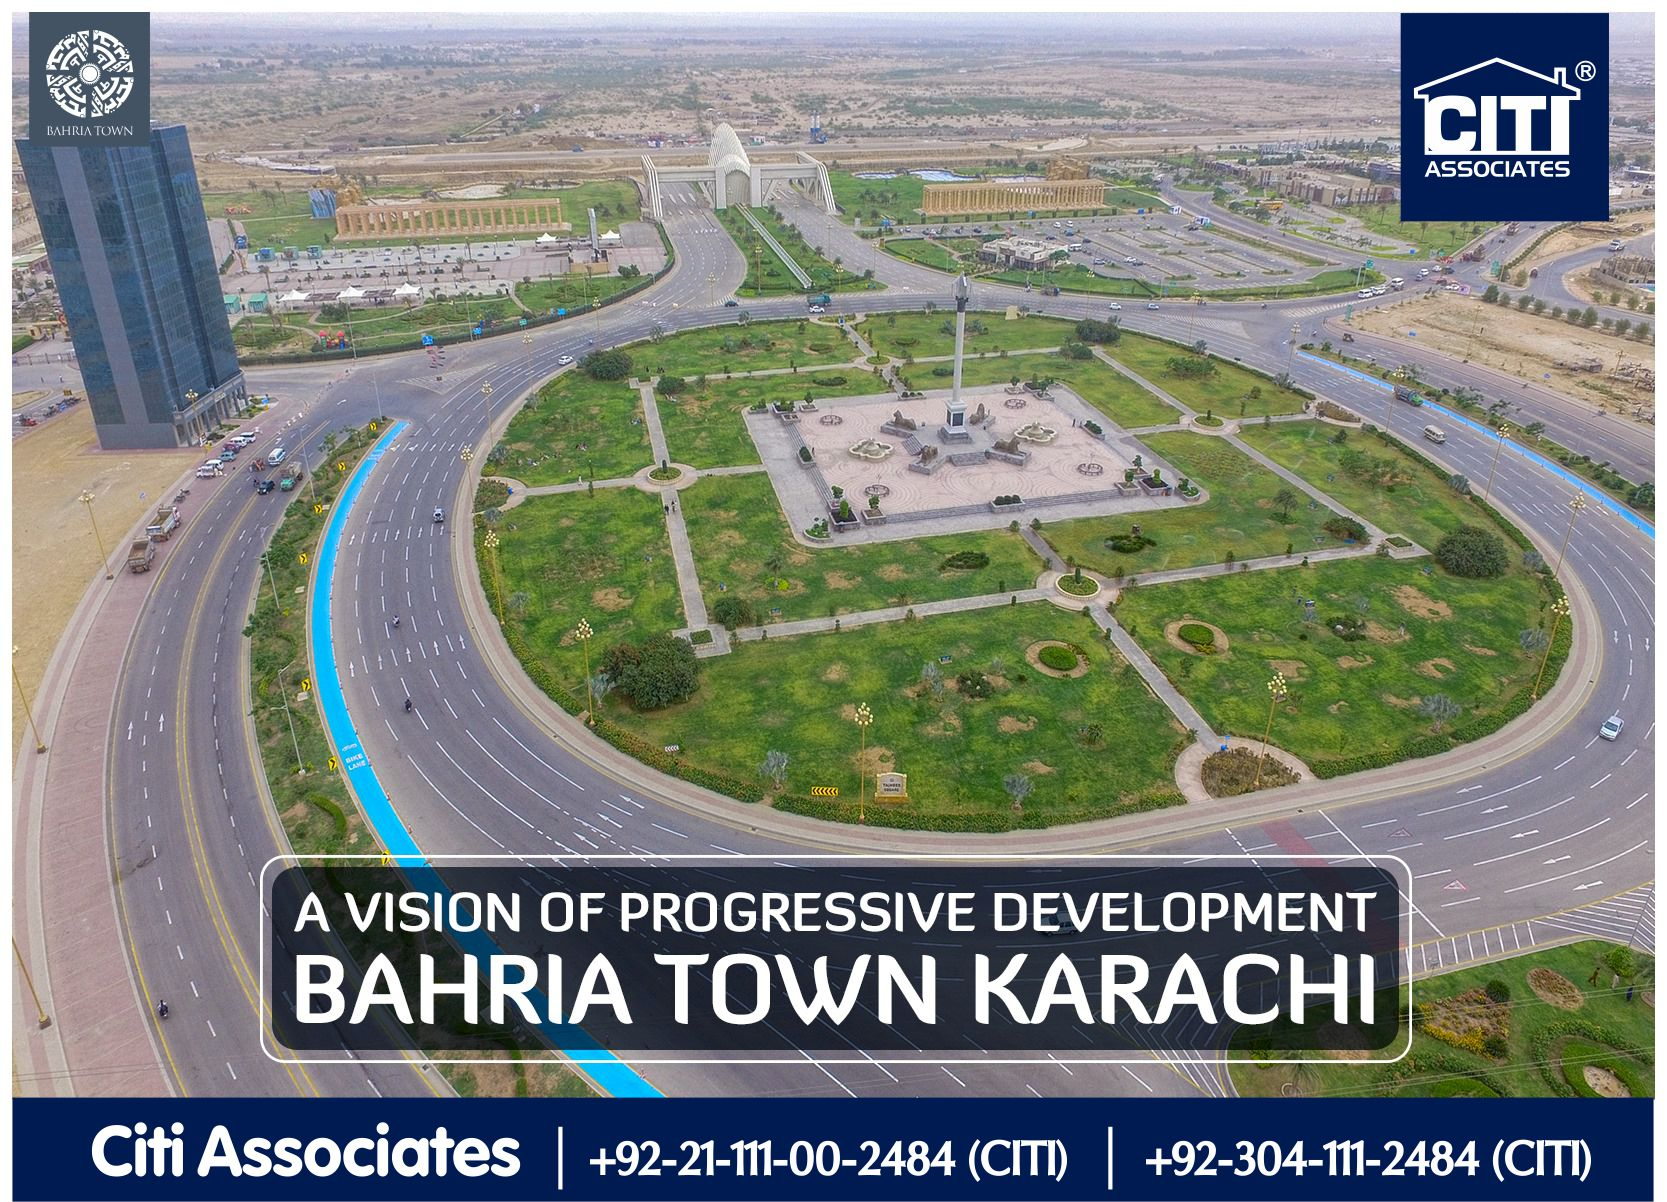 A Vision of Progressive Development | Bahria Town Karachi